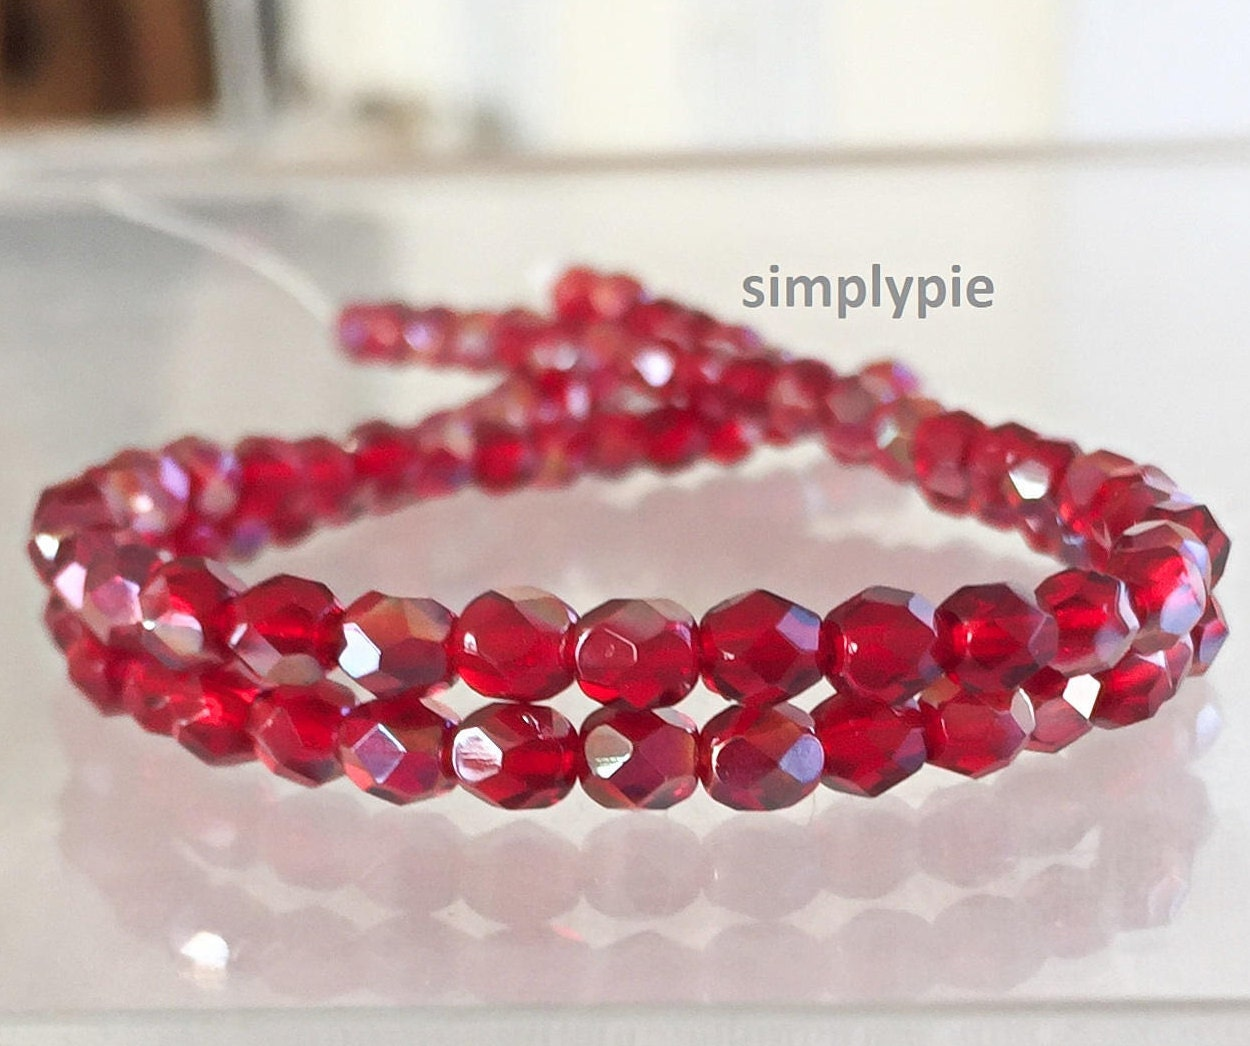 Red Ruby Beads: Ruby Red Celsian Czech Beads Fire Polished 4mm 50 Faceted